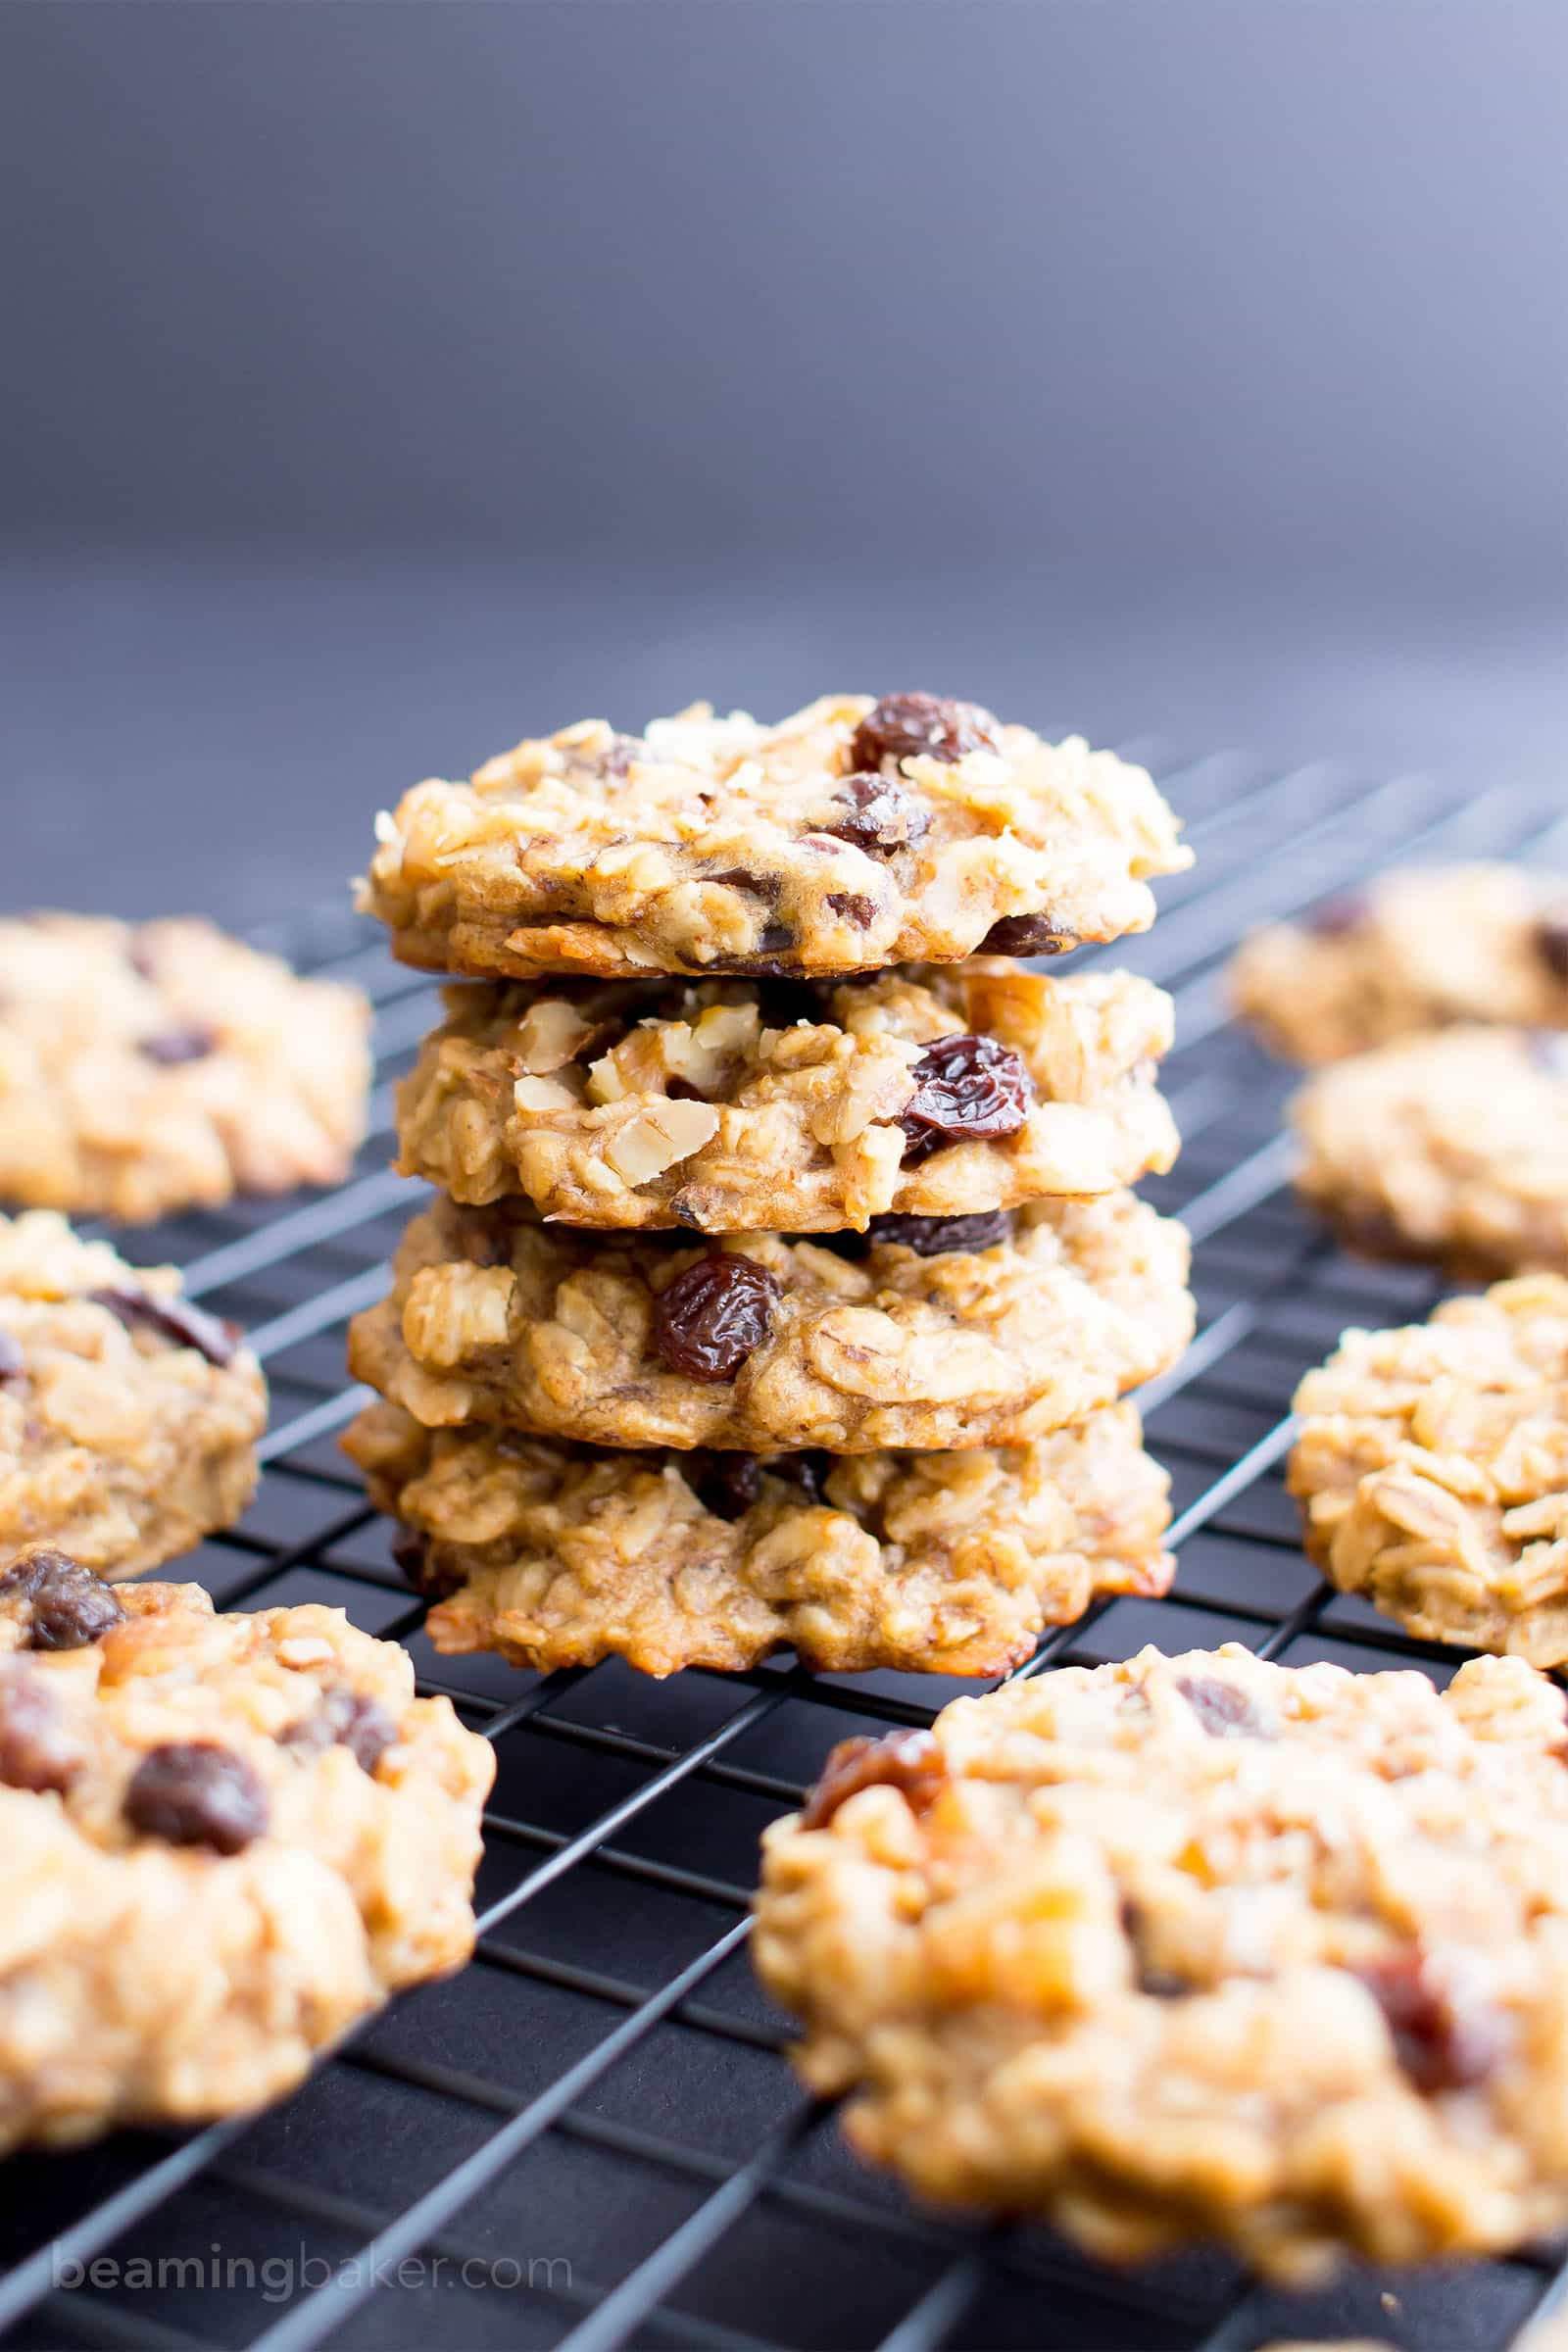 Easy Vegan Peanut Butter Banana Breakfast Cookies Gluten Free V